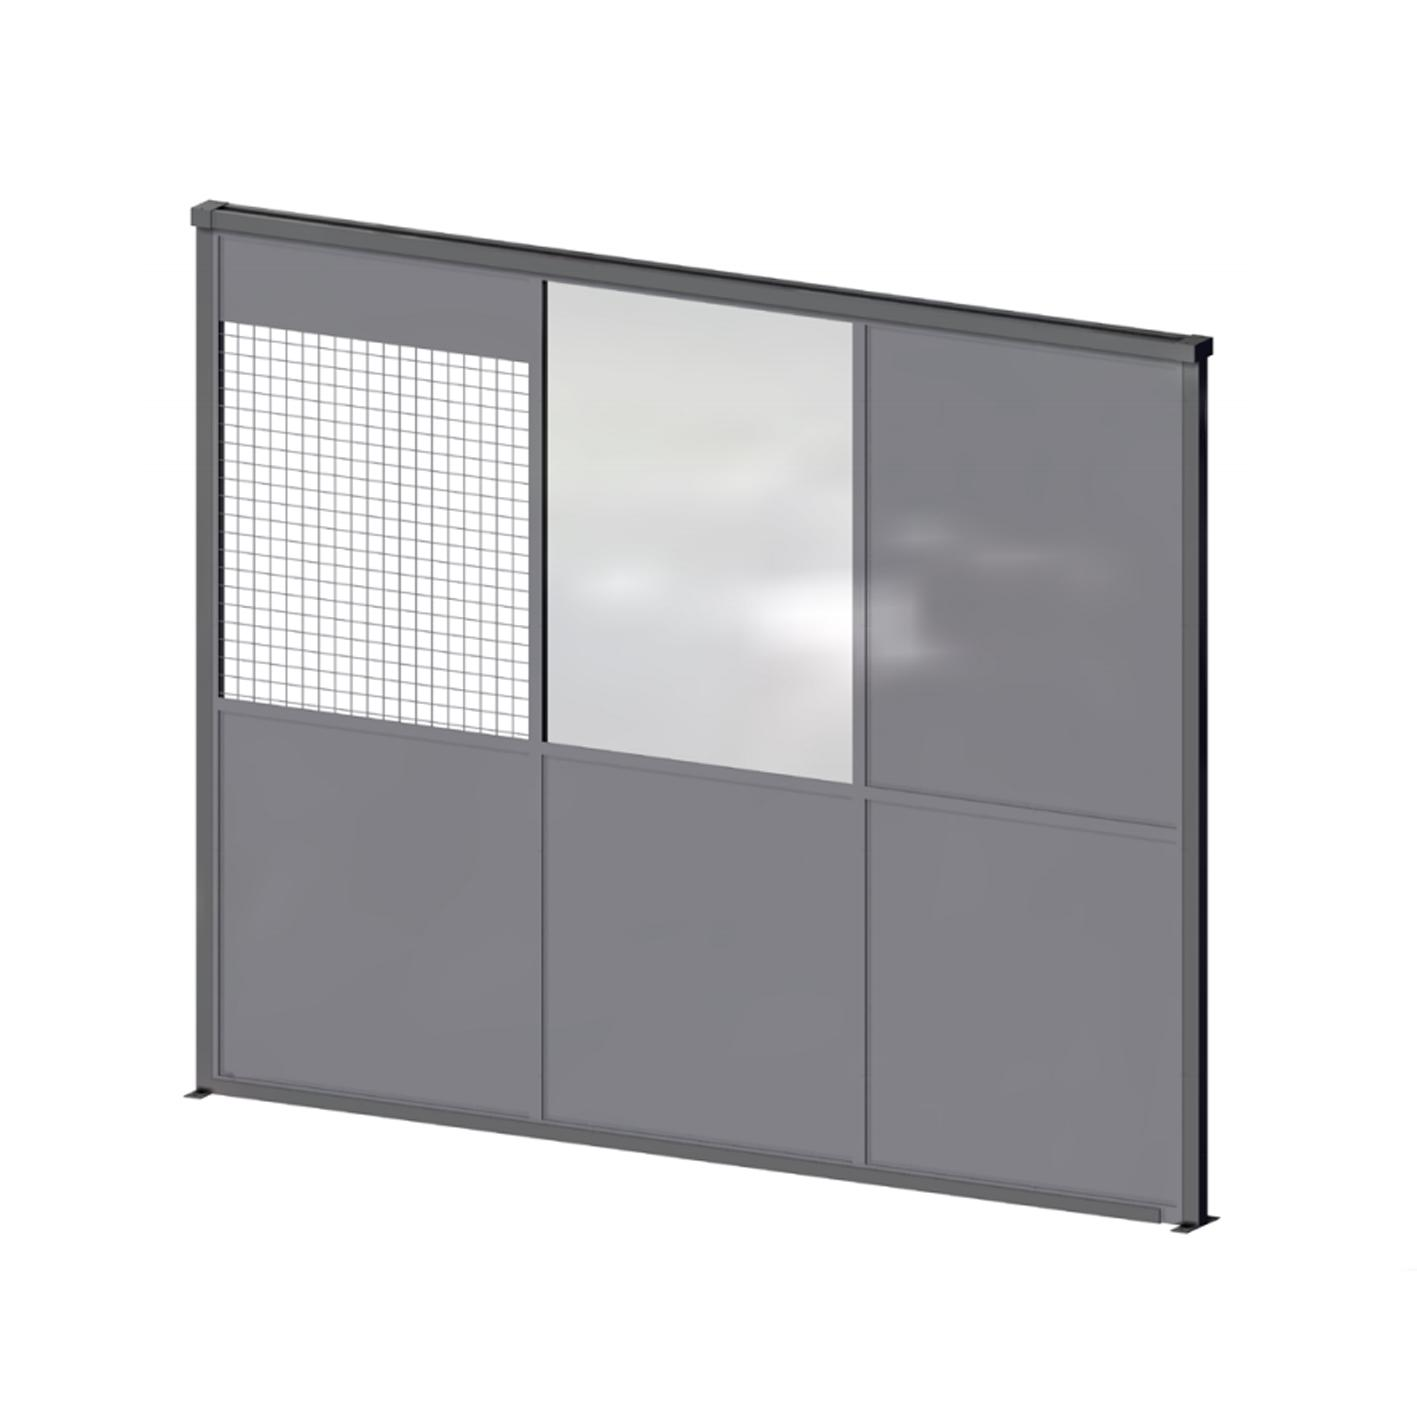 Commercial partitioning, Sigma panels